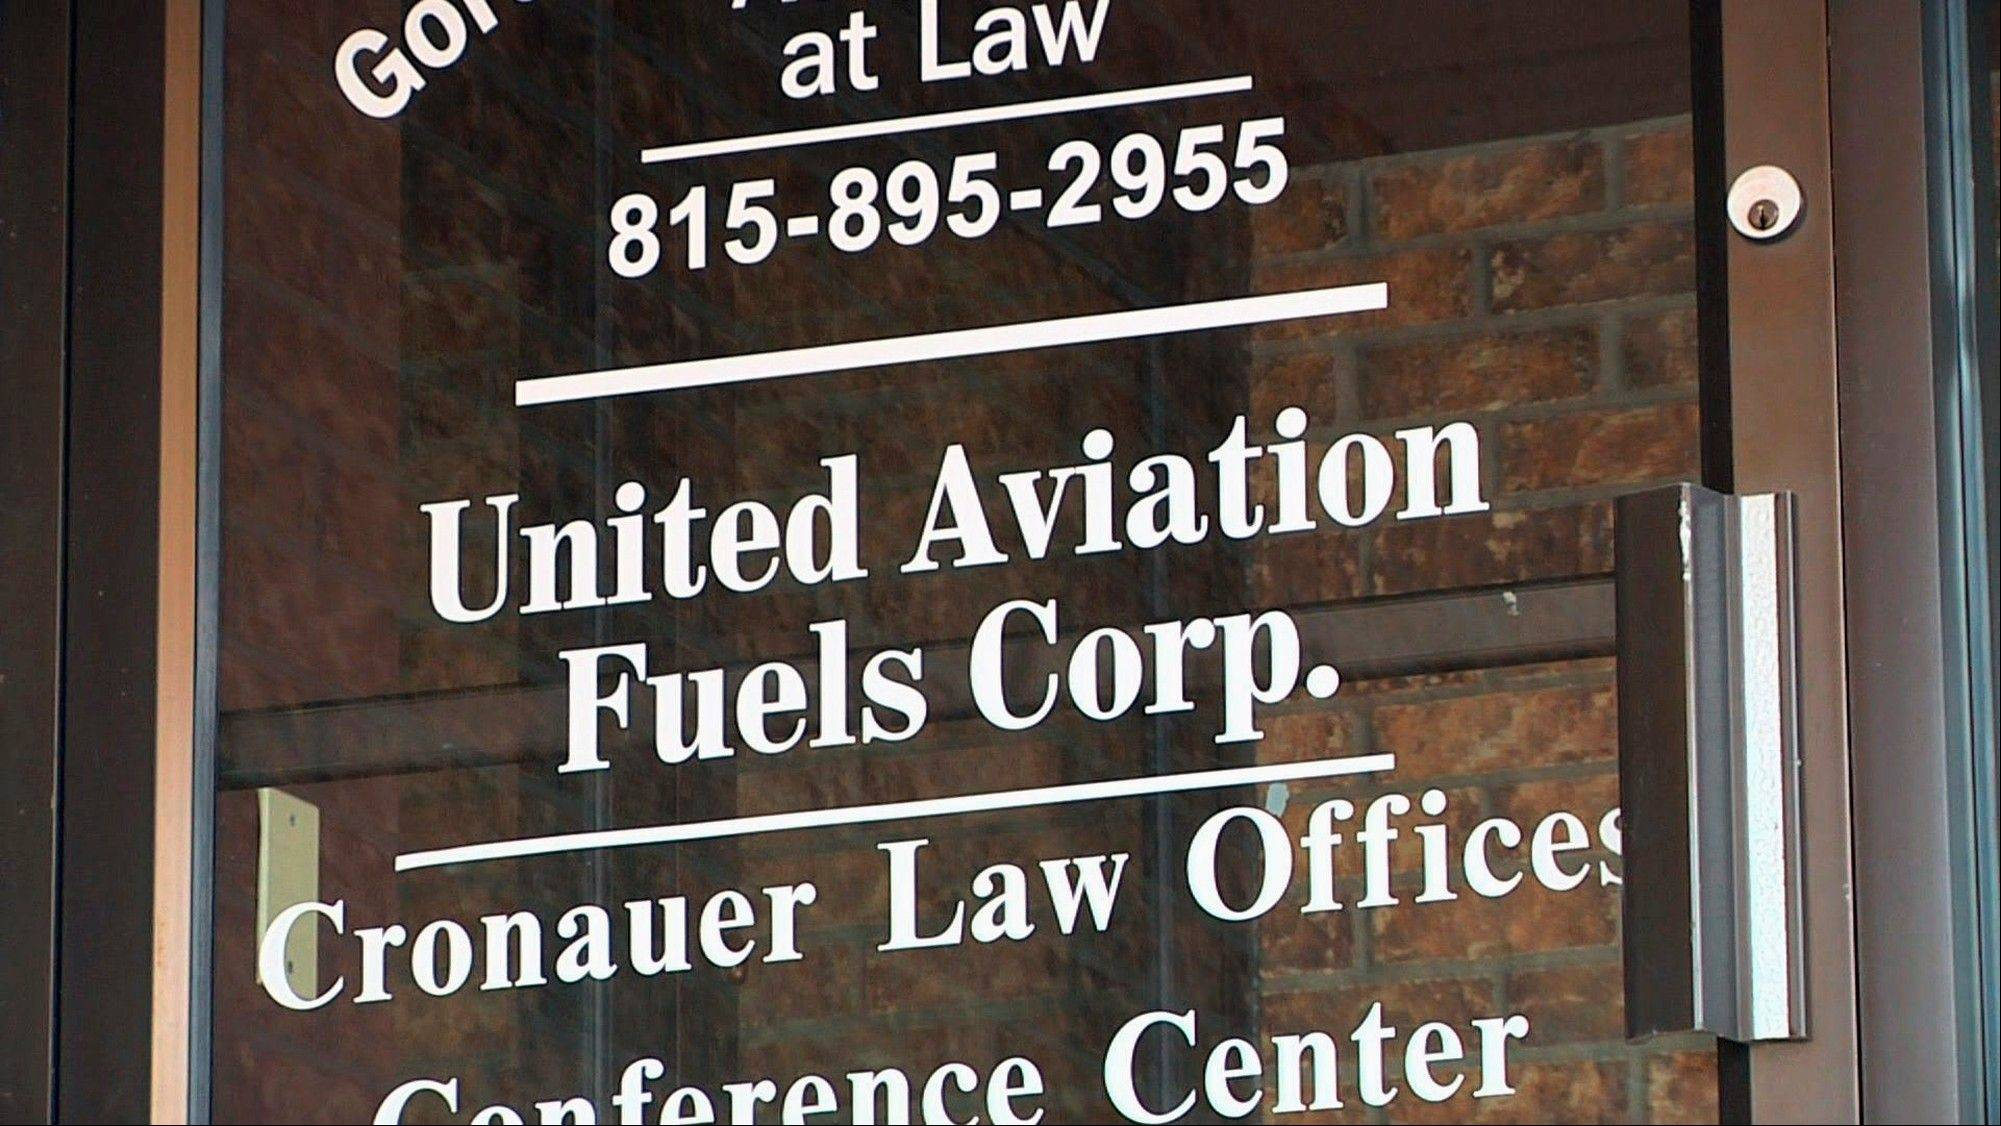 This is the door for United Aviation Fuels Corp., a subsidy of United Airlines, located in a small office building in Sycamore, Ill.